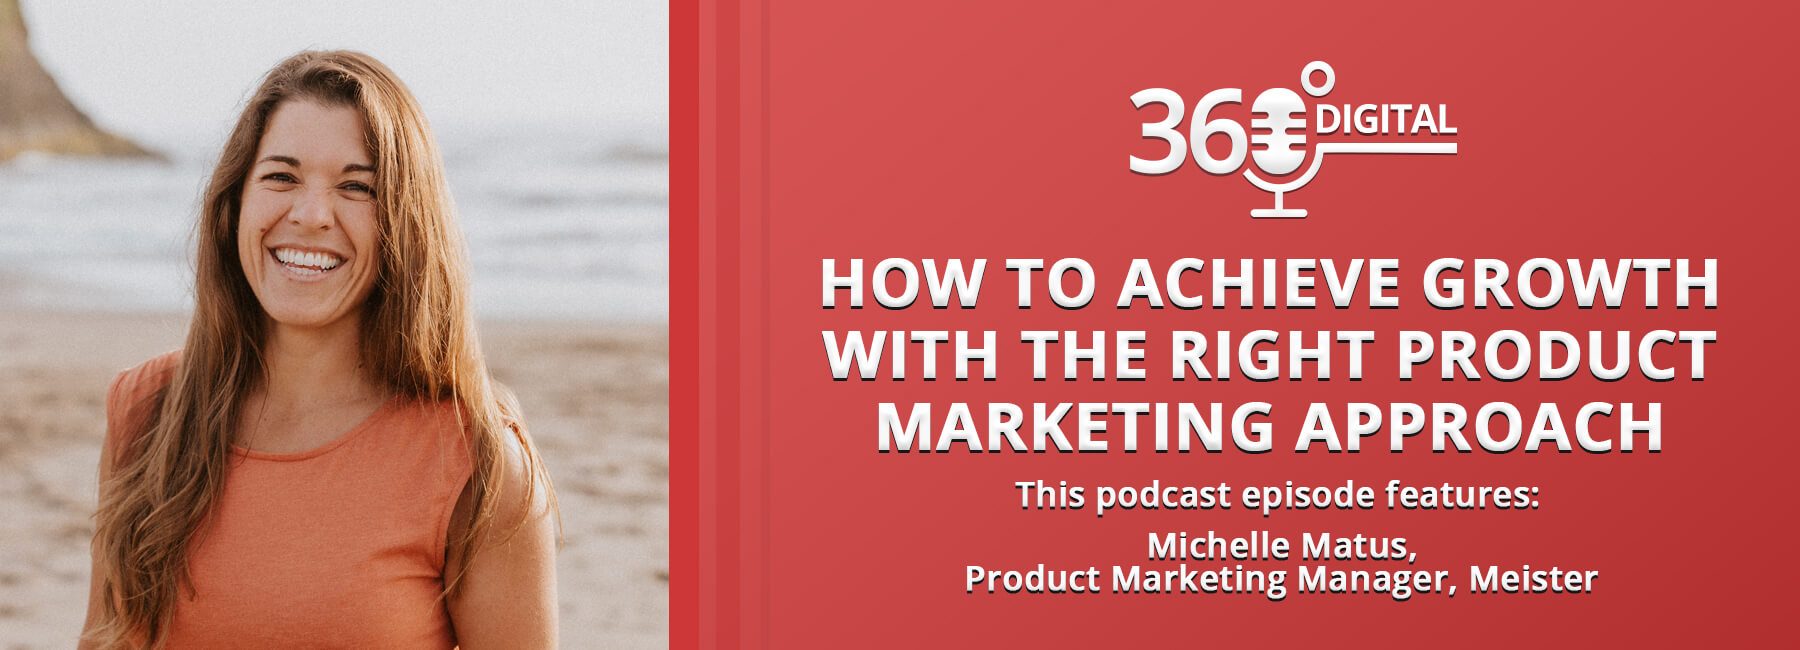 360 Digital podcast with Michelle Matus